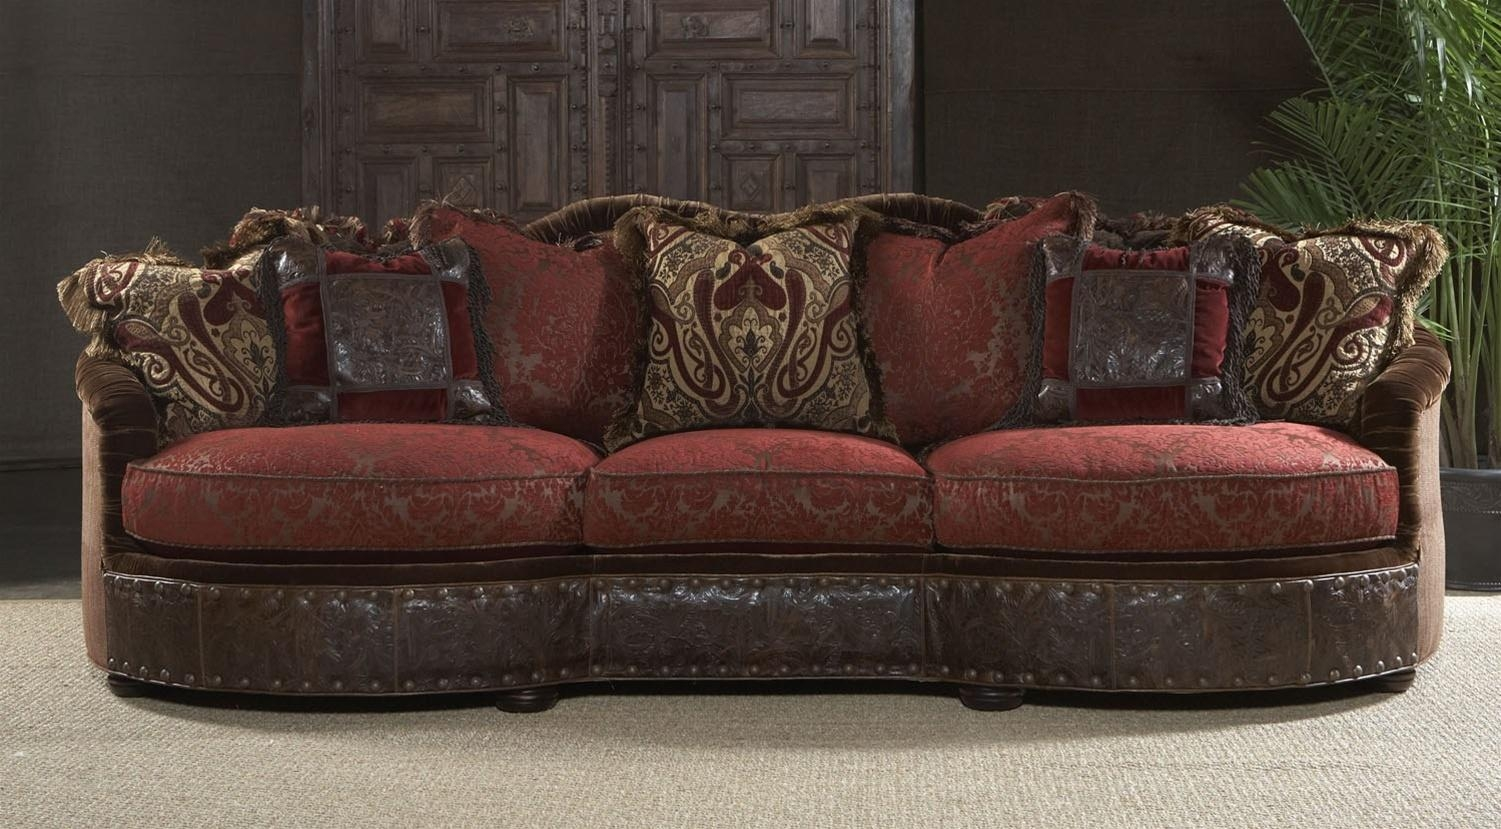 Furniture: Amazon Sofas And Chairs | Burgundy Sofa | Red Sectional For Burgundy Sectional Sofas (View 20 of 20)